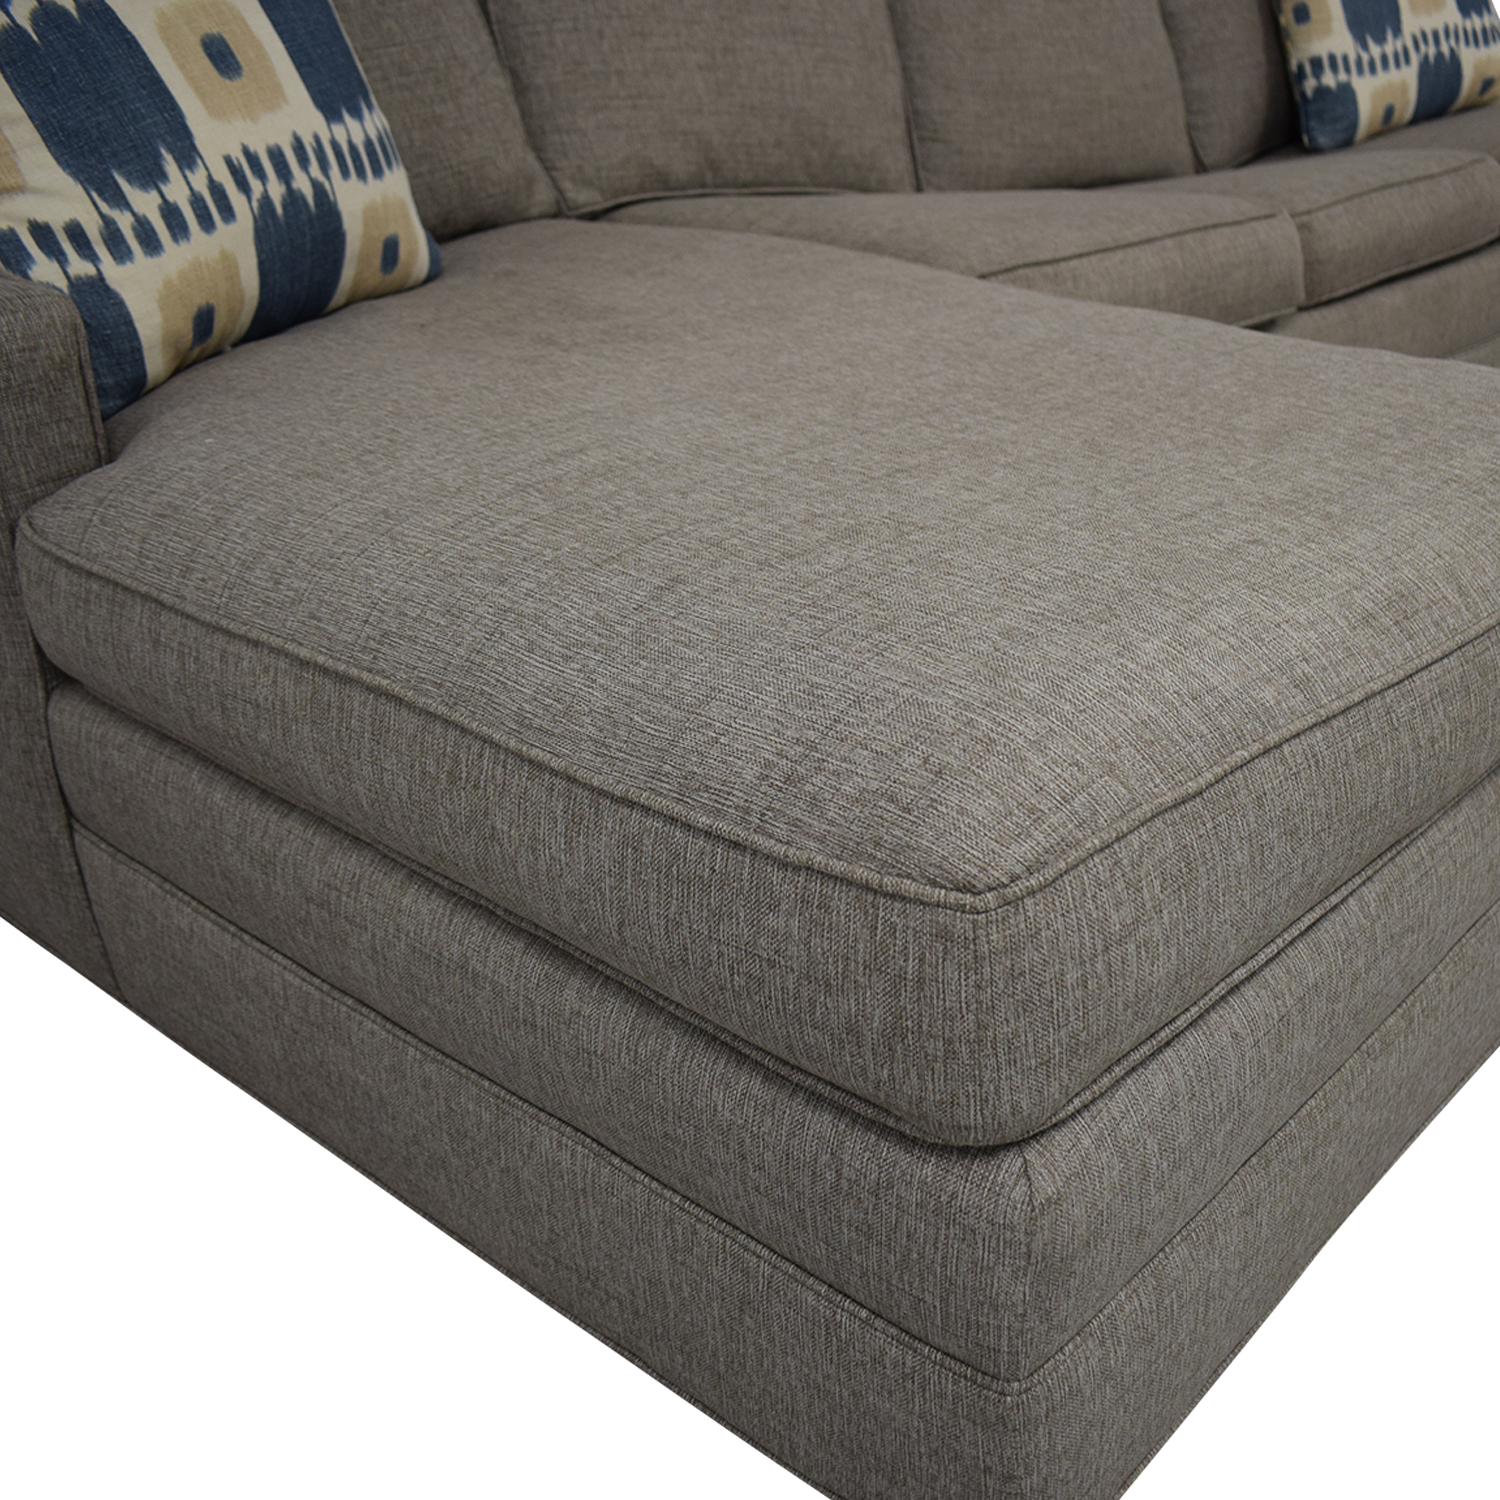 buy Vanguard Furniture Left Chaise Queen Sleeper Sofa Vanguard Furniture